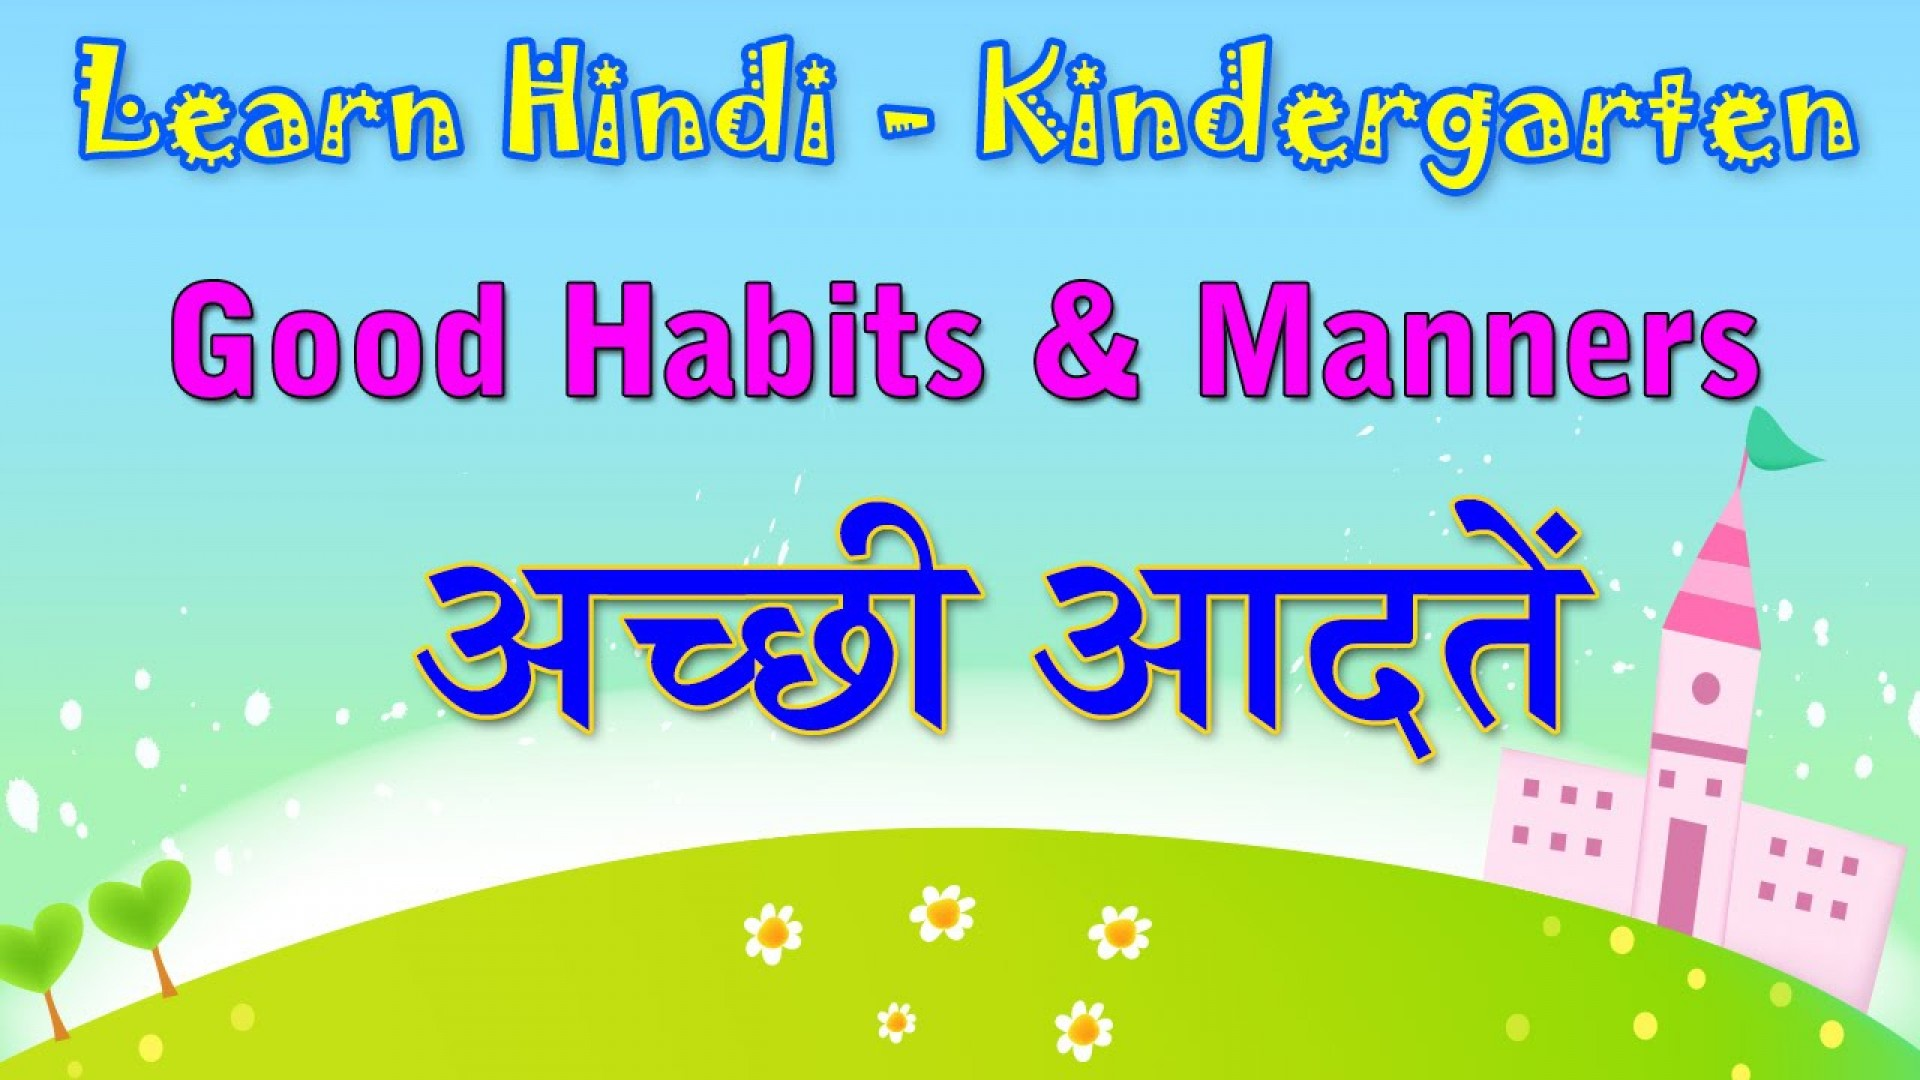 004 Essay Example Good Habits In Hindi Exceptional Food Habit 1920